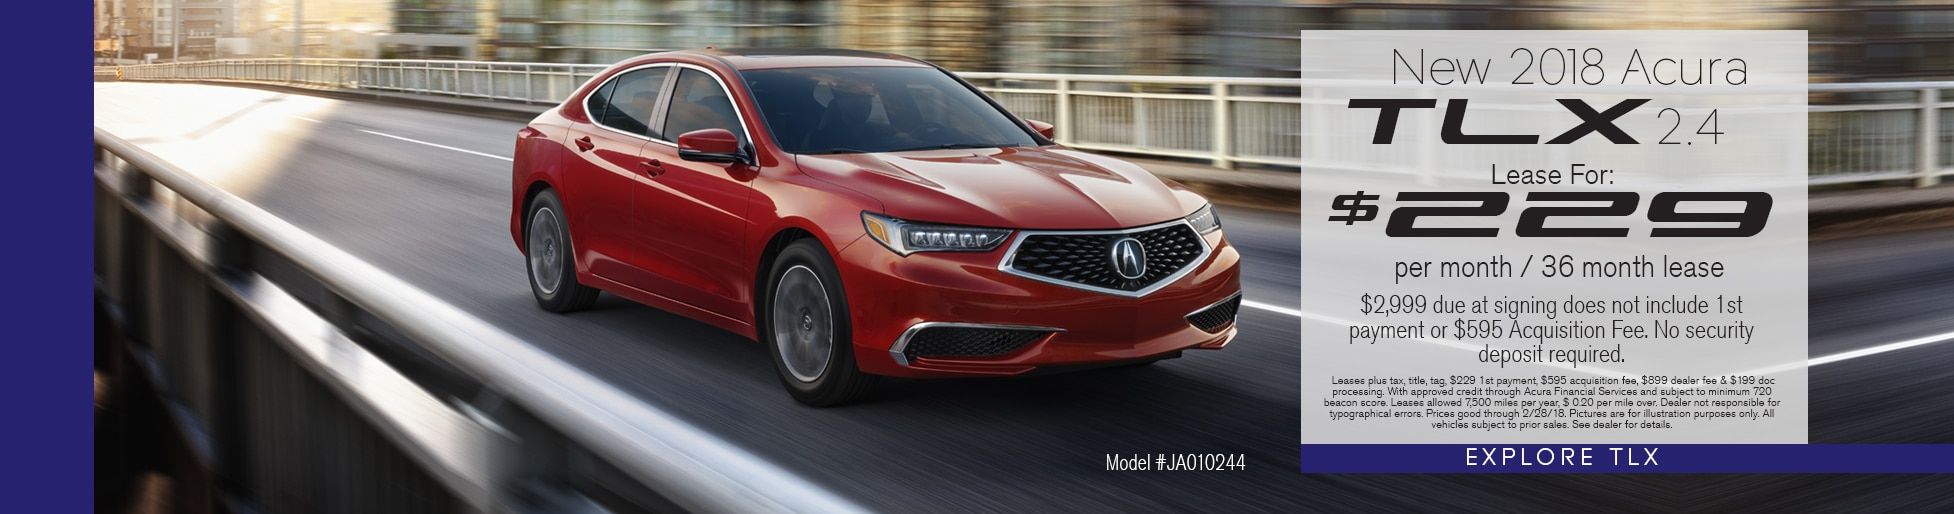 West Palm Beach Acura TLX Dealer TLX Features Specs - Acura of west palm beach